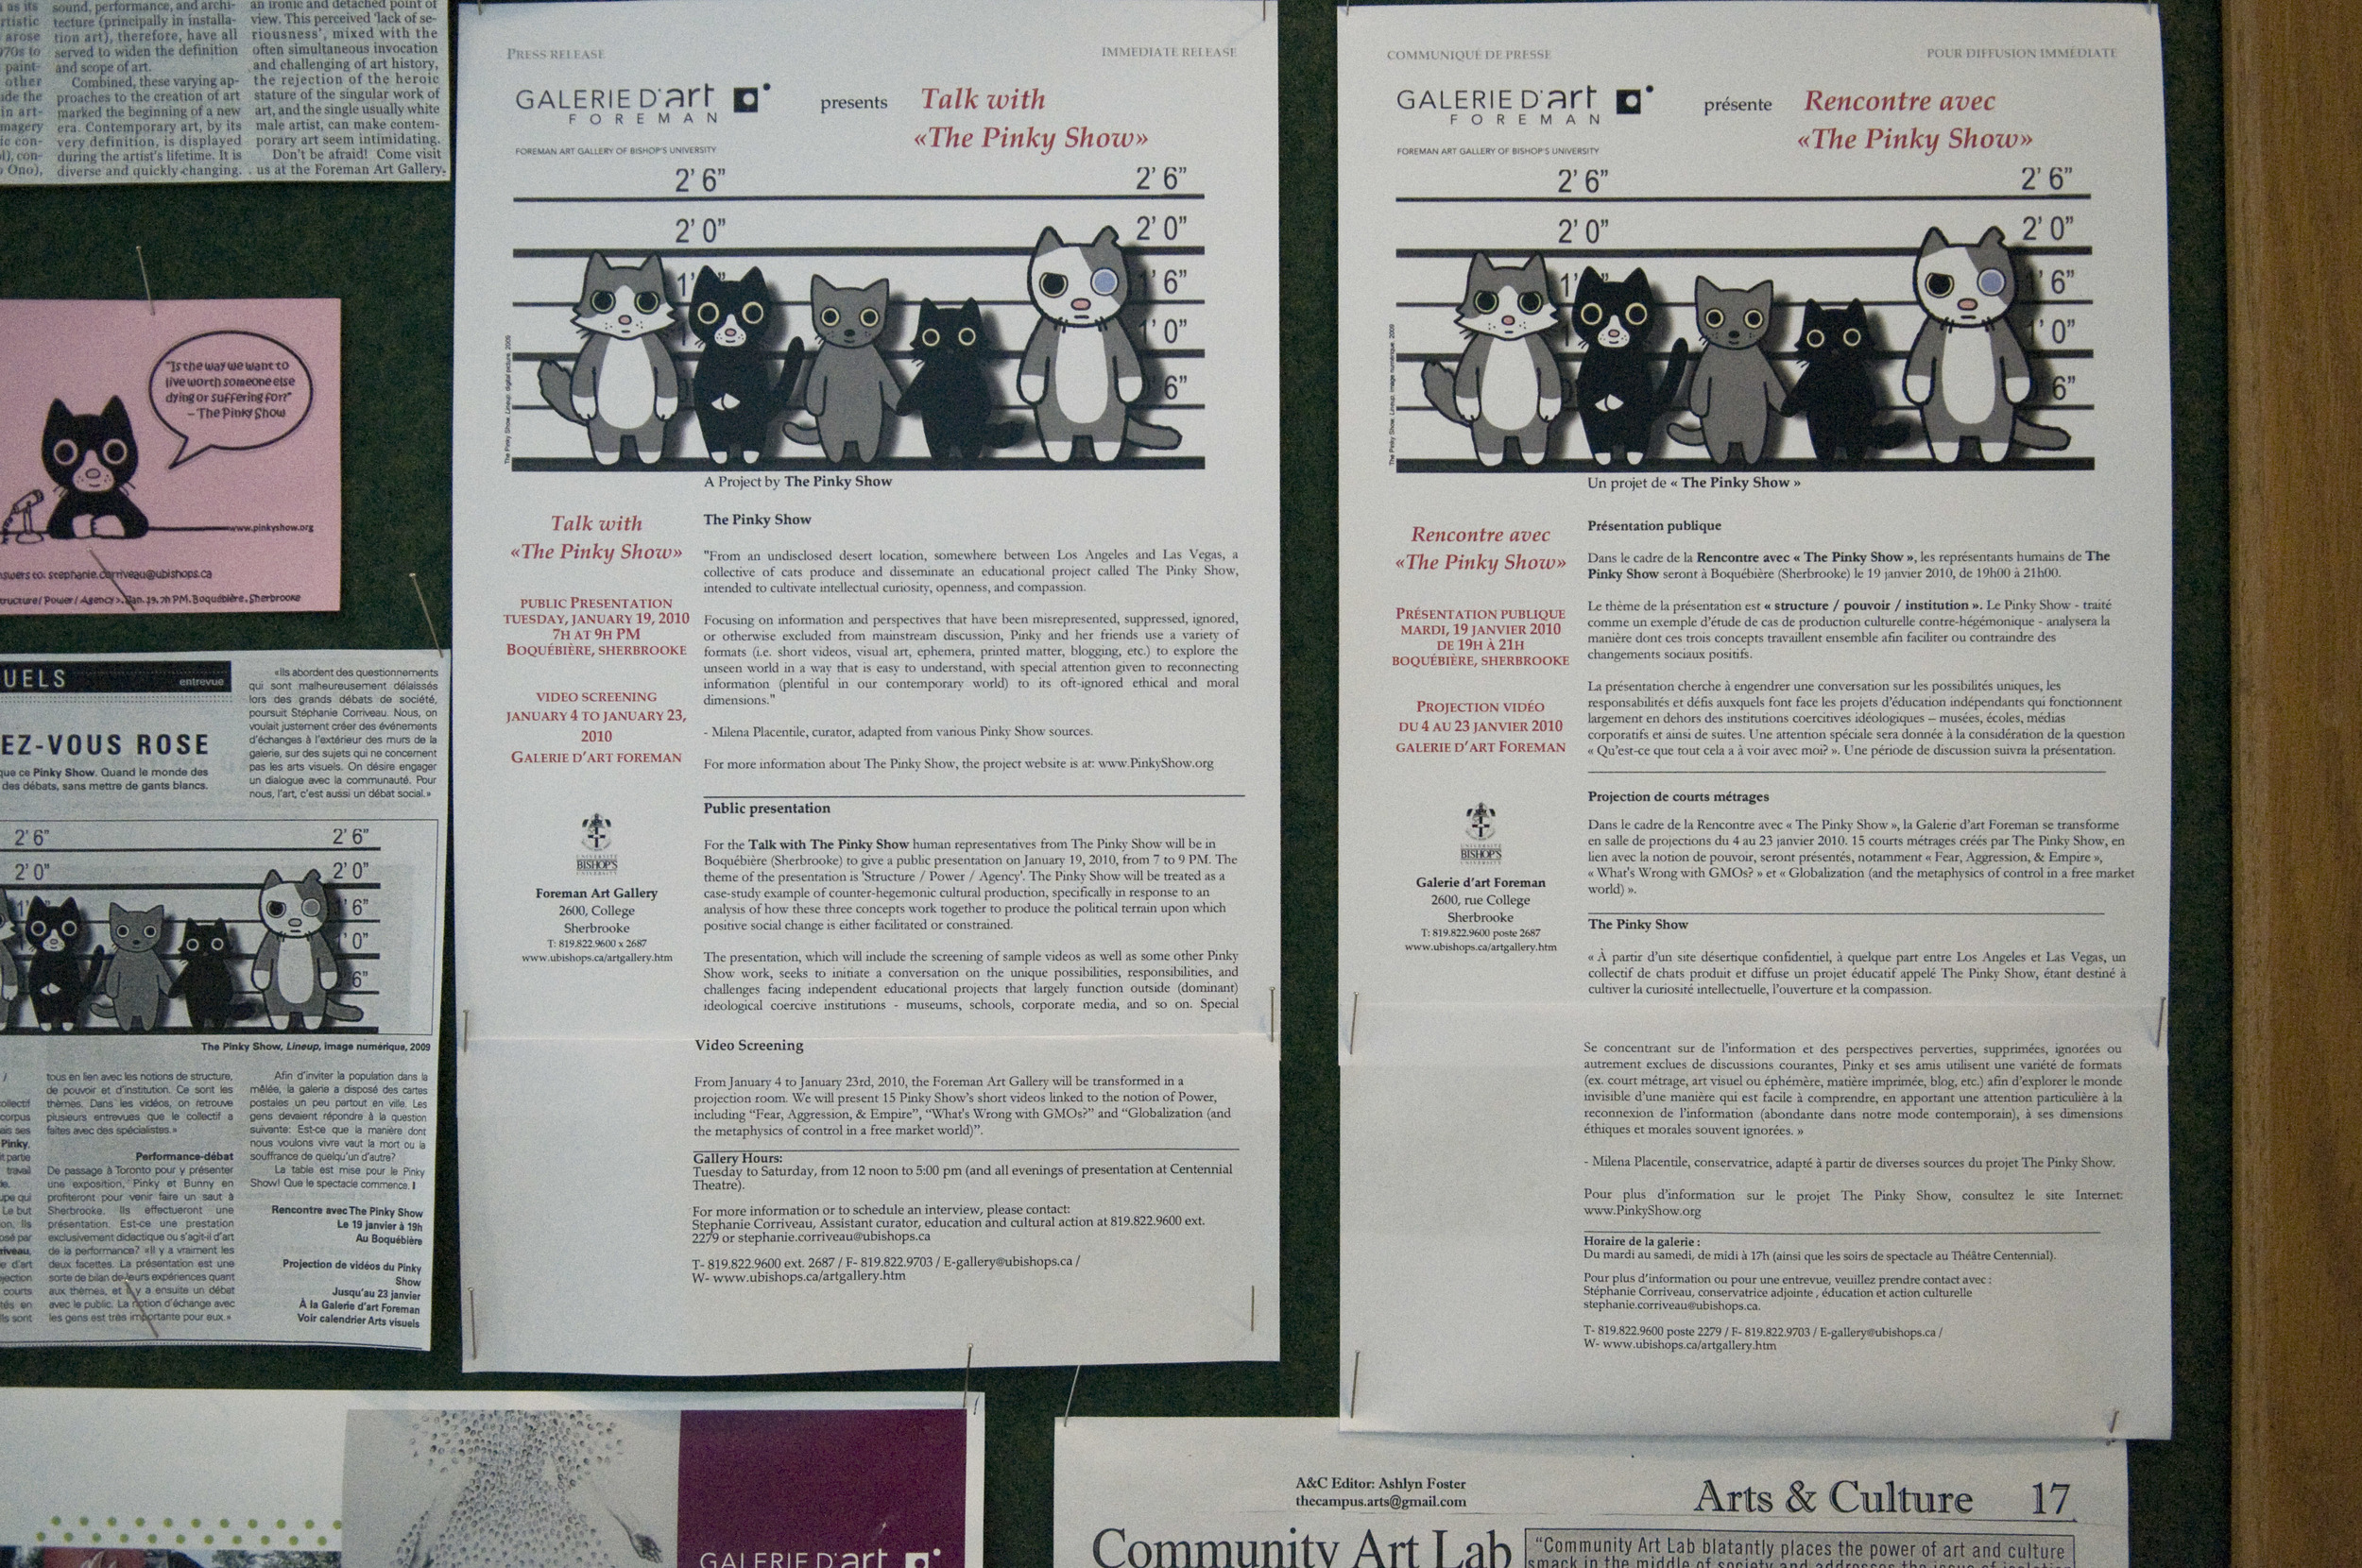 The unbelievably tidy information board at Bishop's University's Art Gallery.